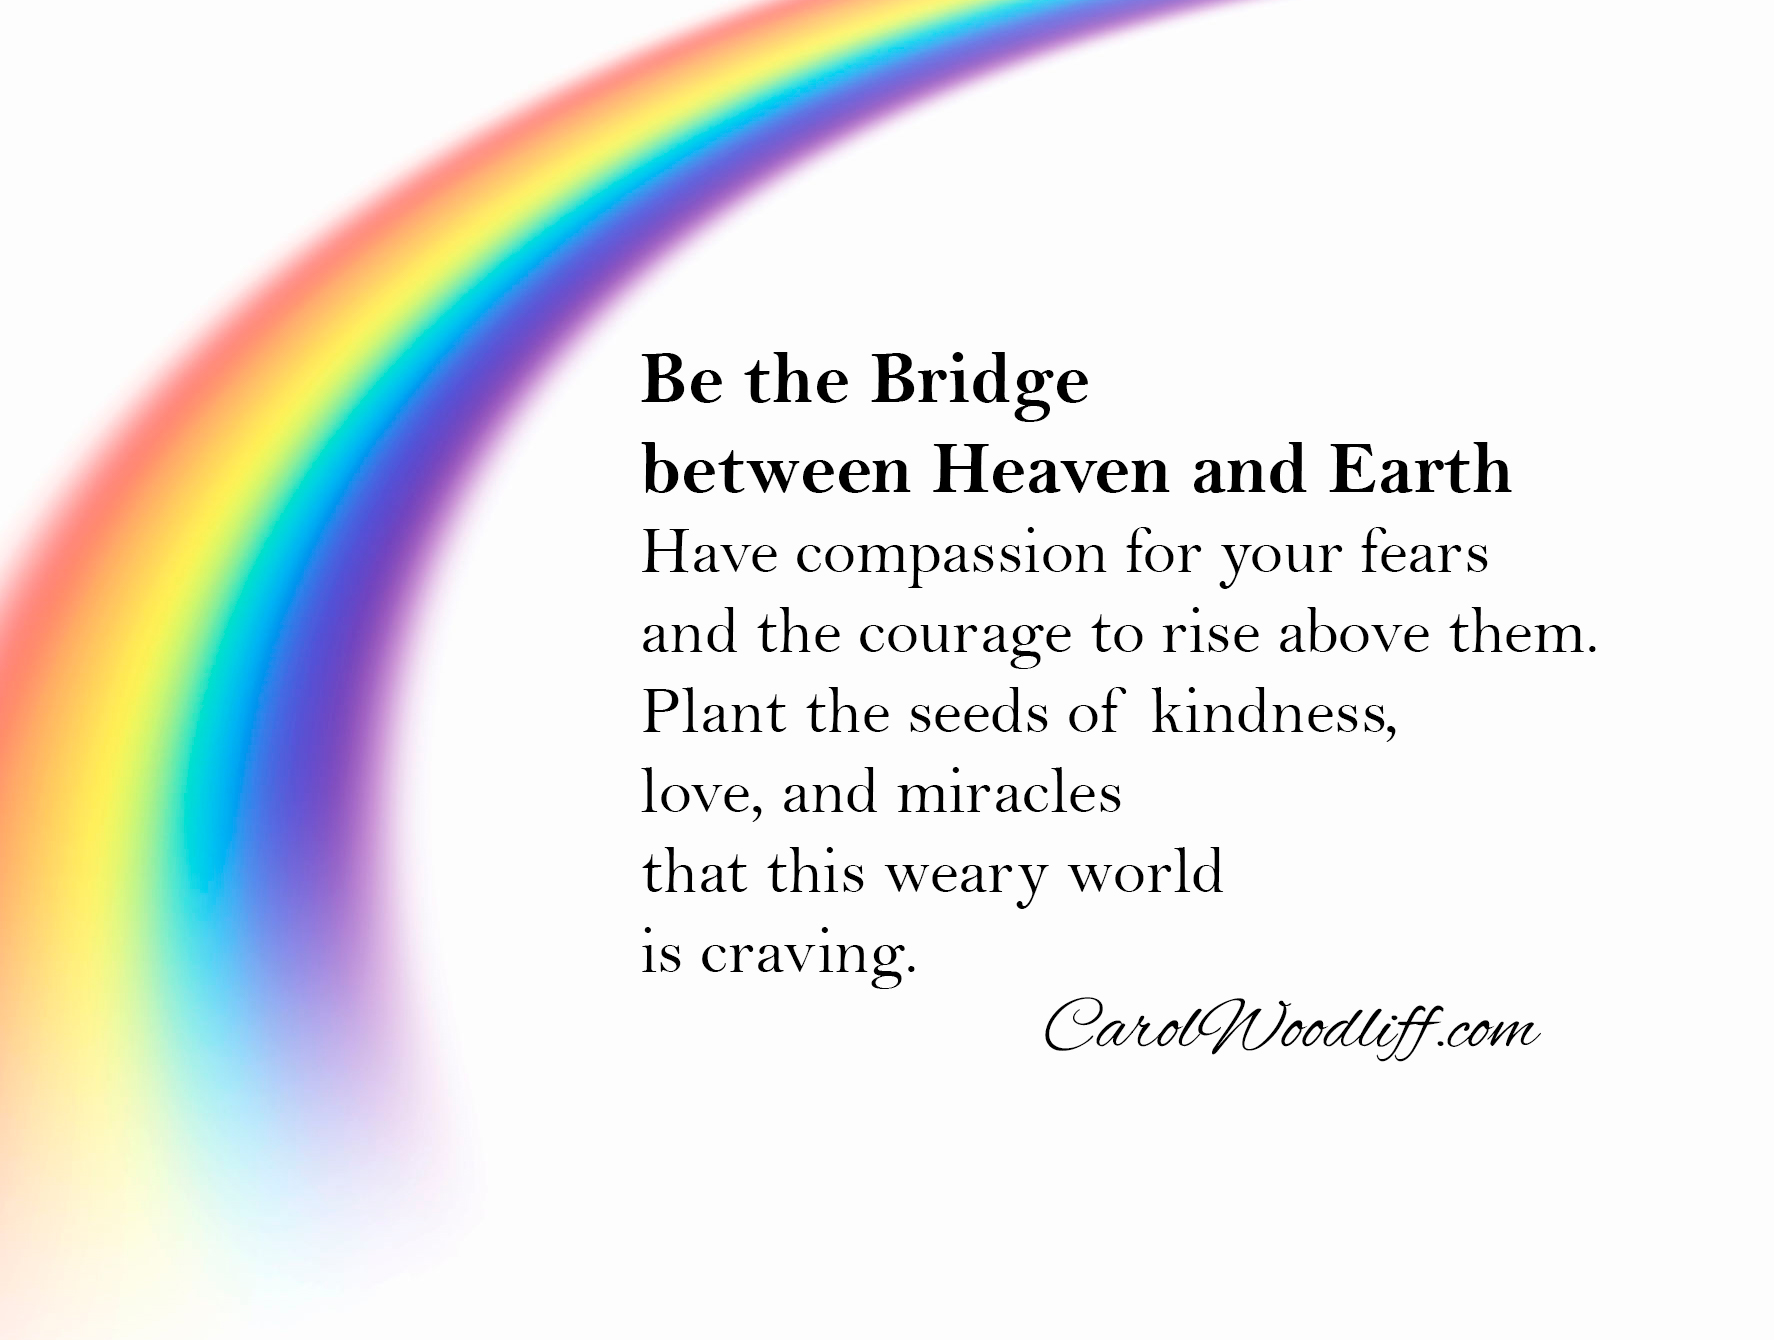 Rainbow and quote